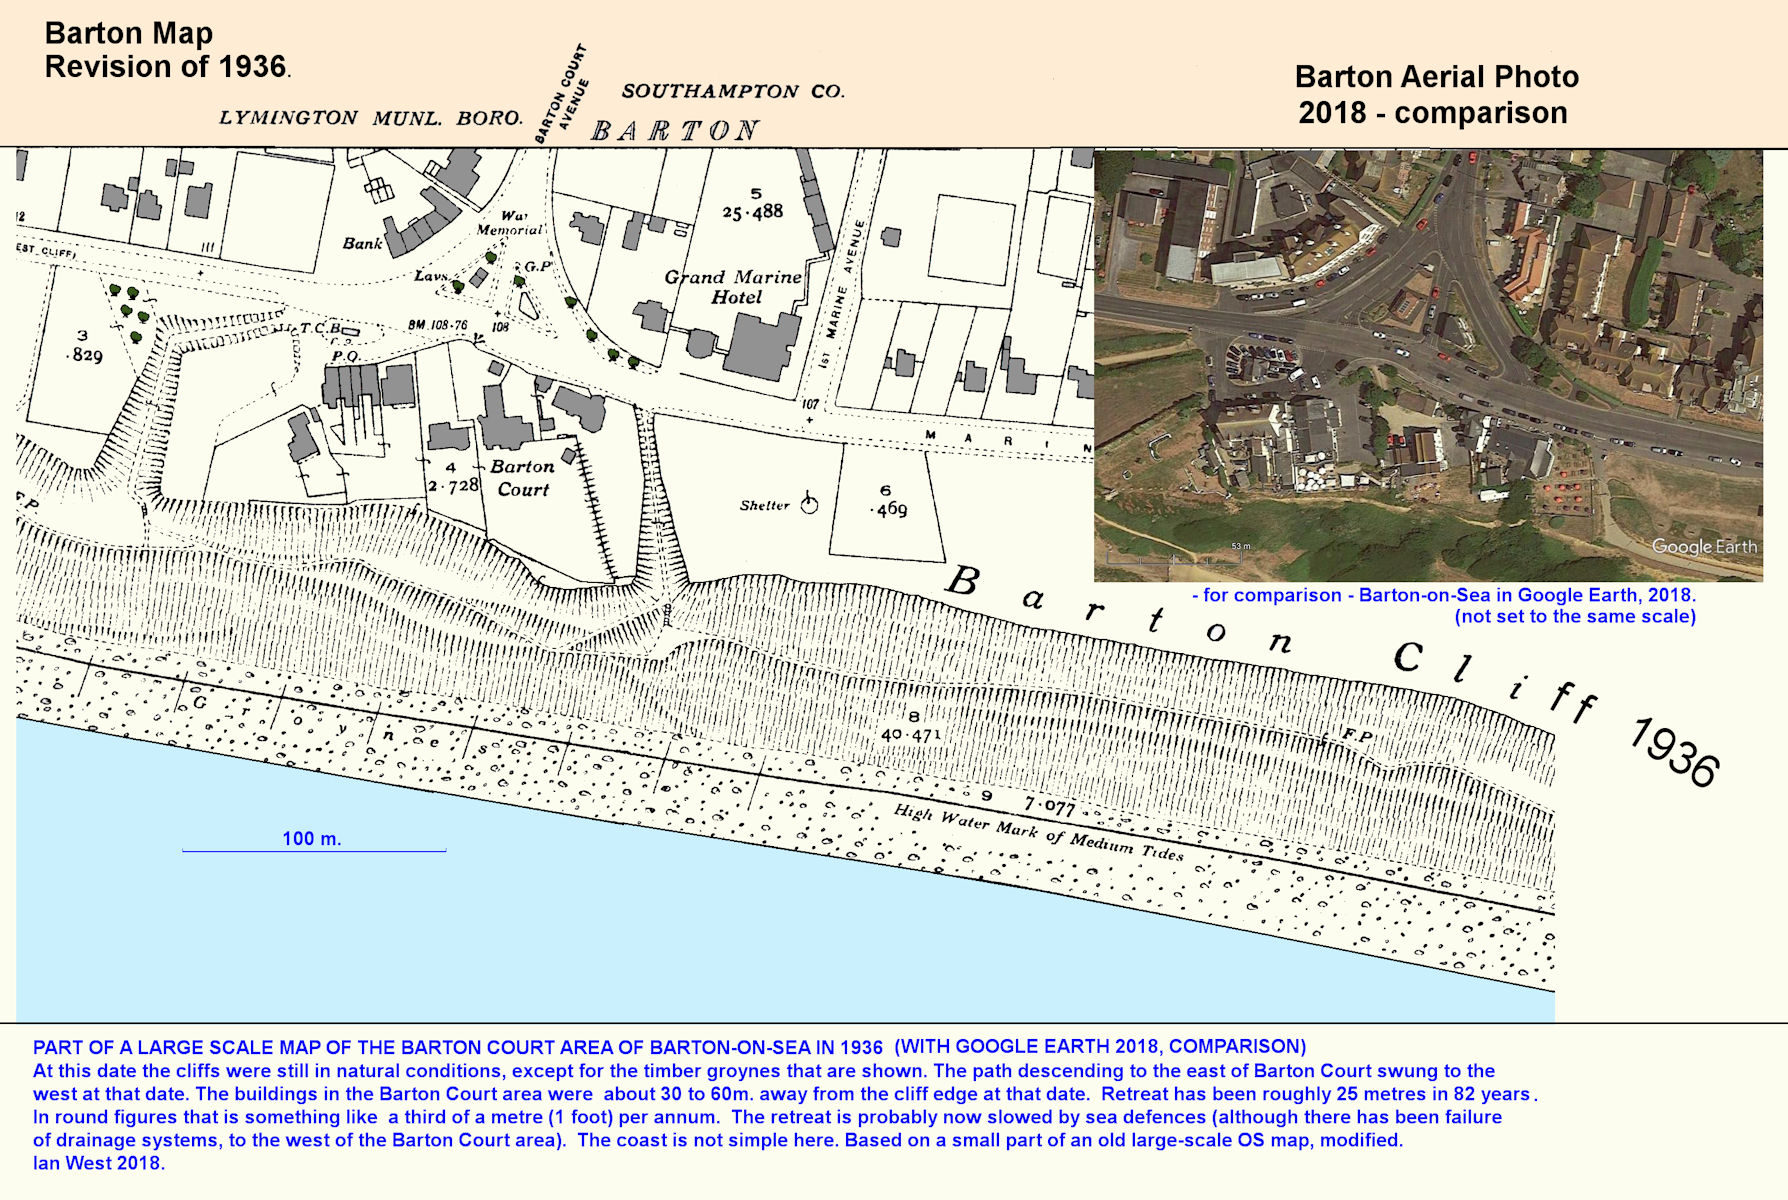 Erosion in the central Barton-on-Sea cliff area, shown by comparison of part of a 1936 map and part of a 2008 aerial photograph